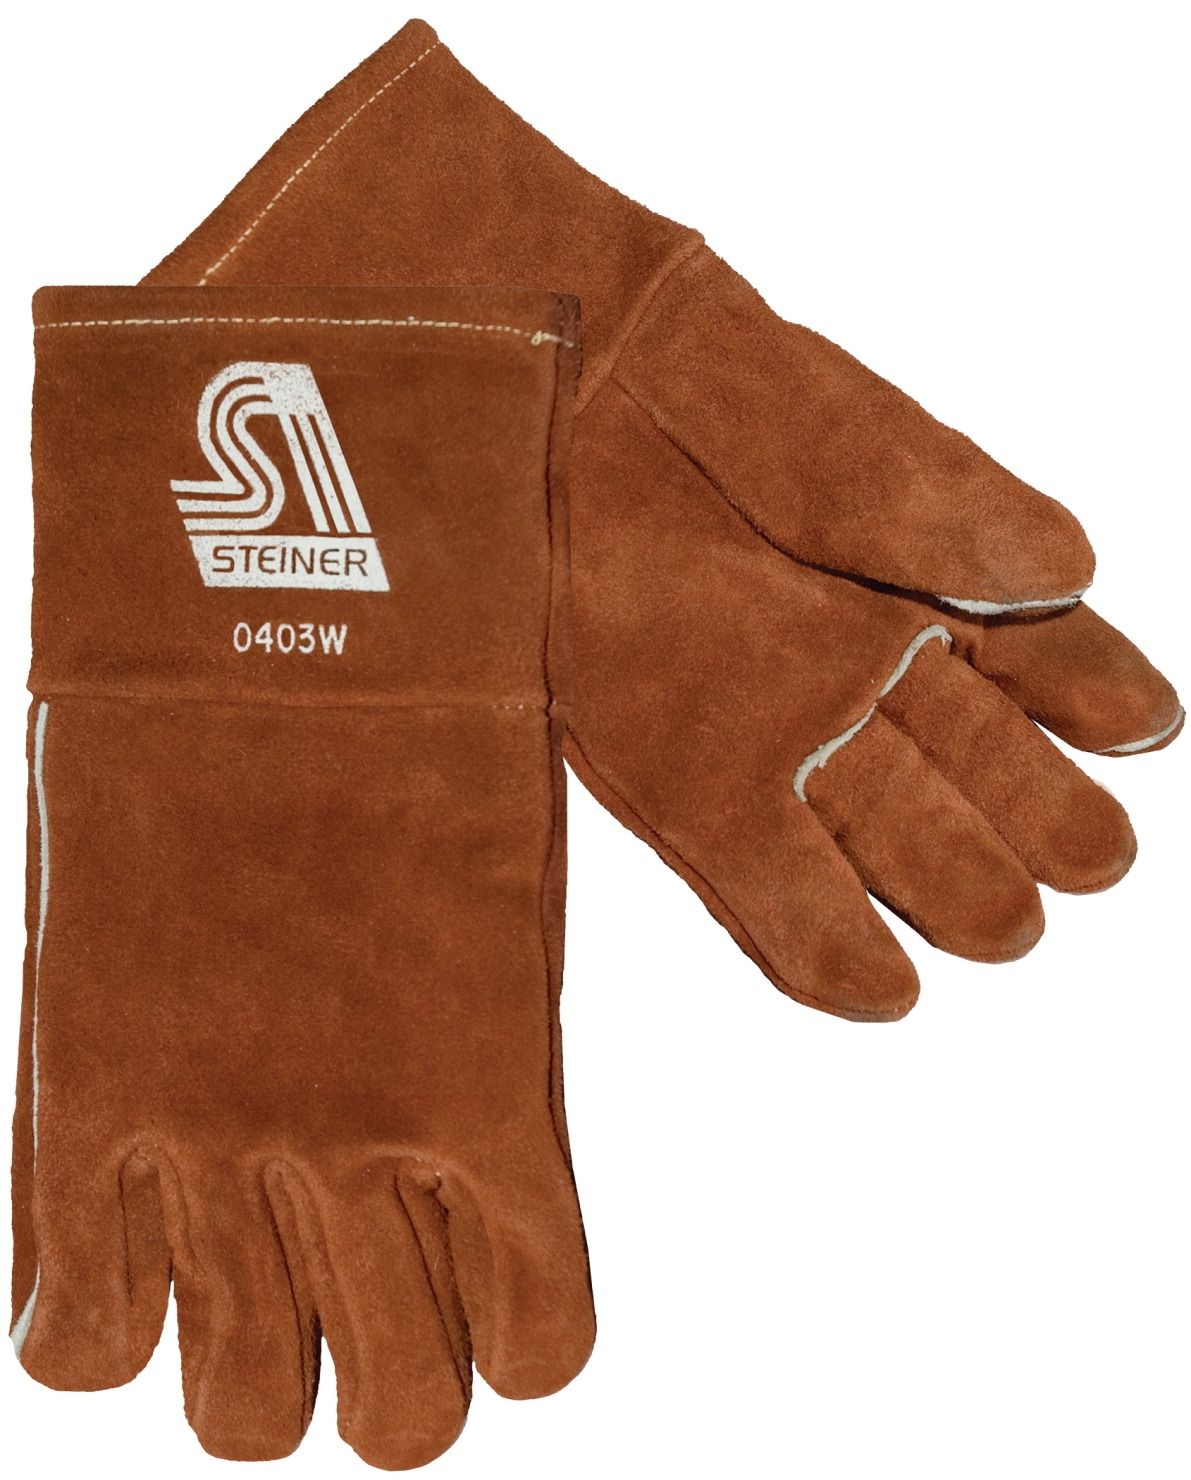 Learning: Supplies Cards Business Cards - 589733 - Next Generation Science Leather Welding Gloves 589733